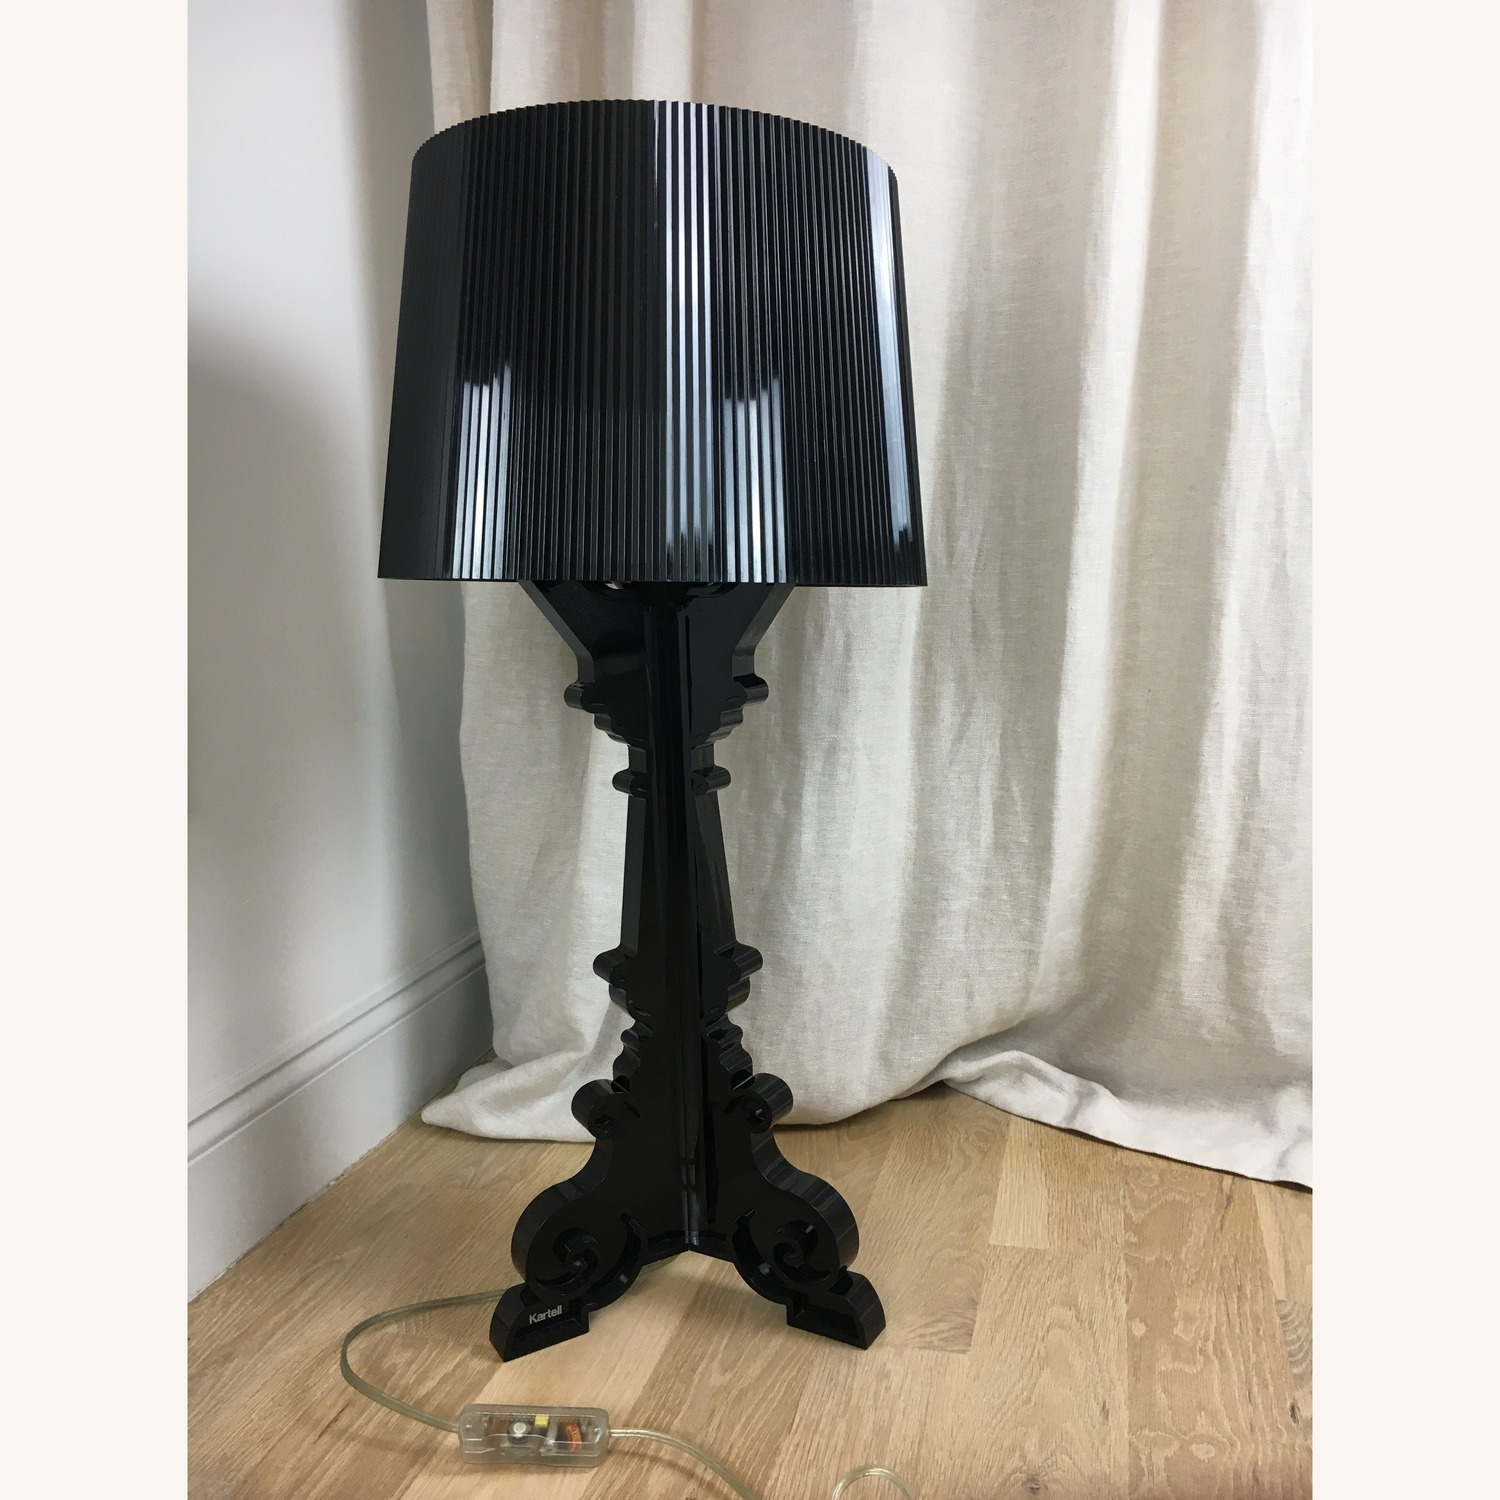 Kartell Lamp BOURGIE